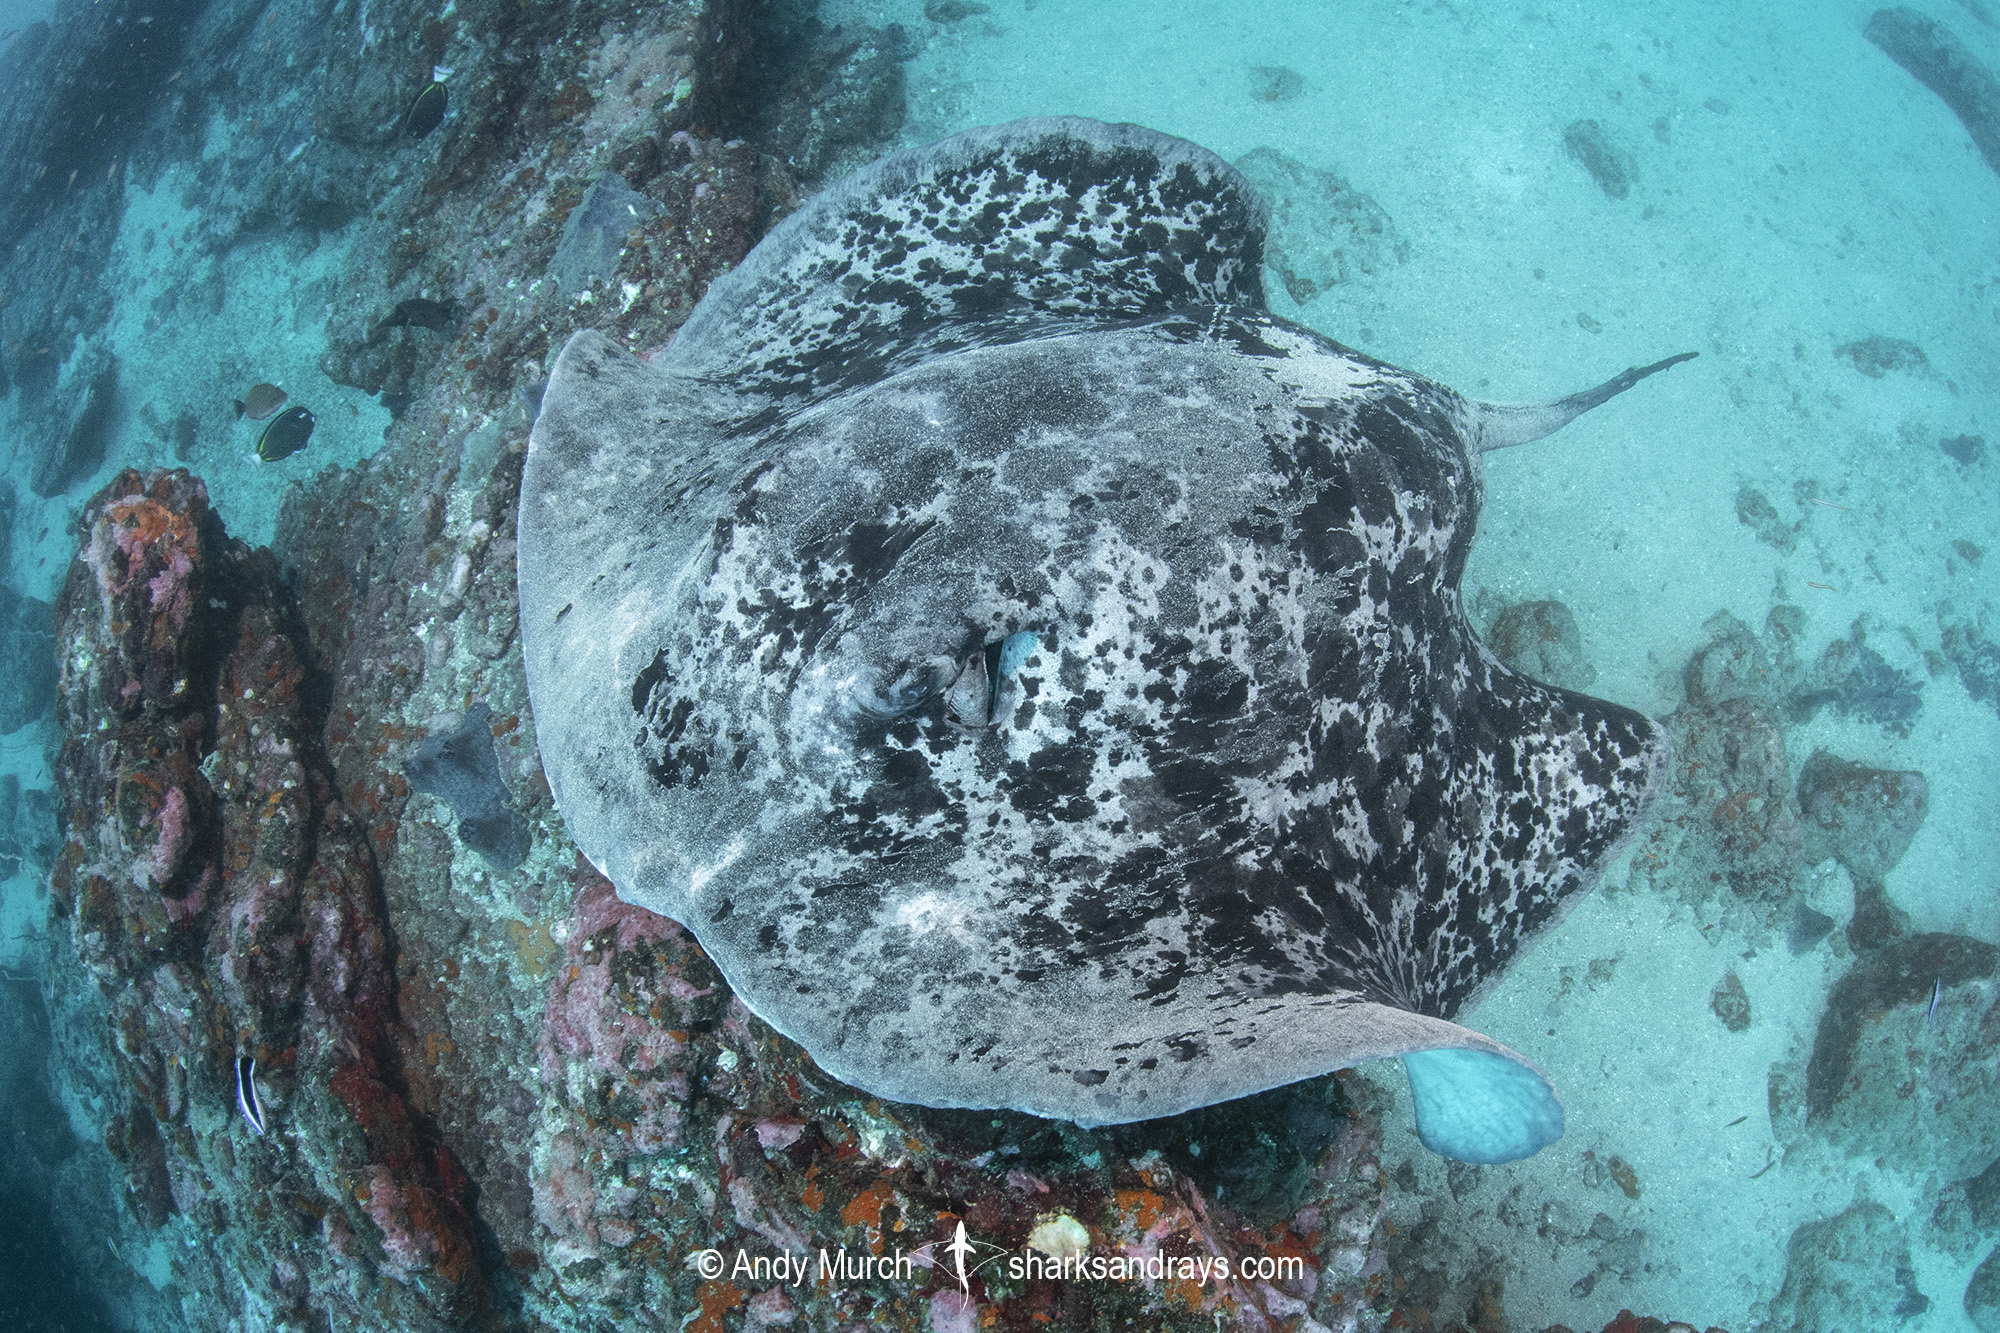 Blotched Fantail Ray